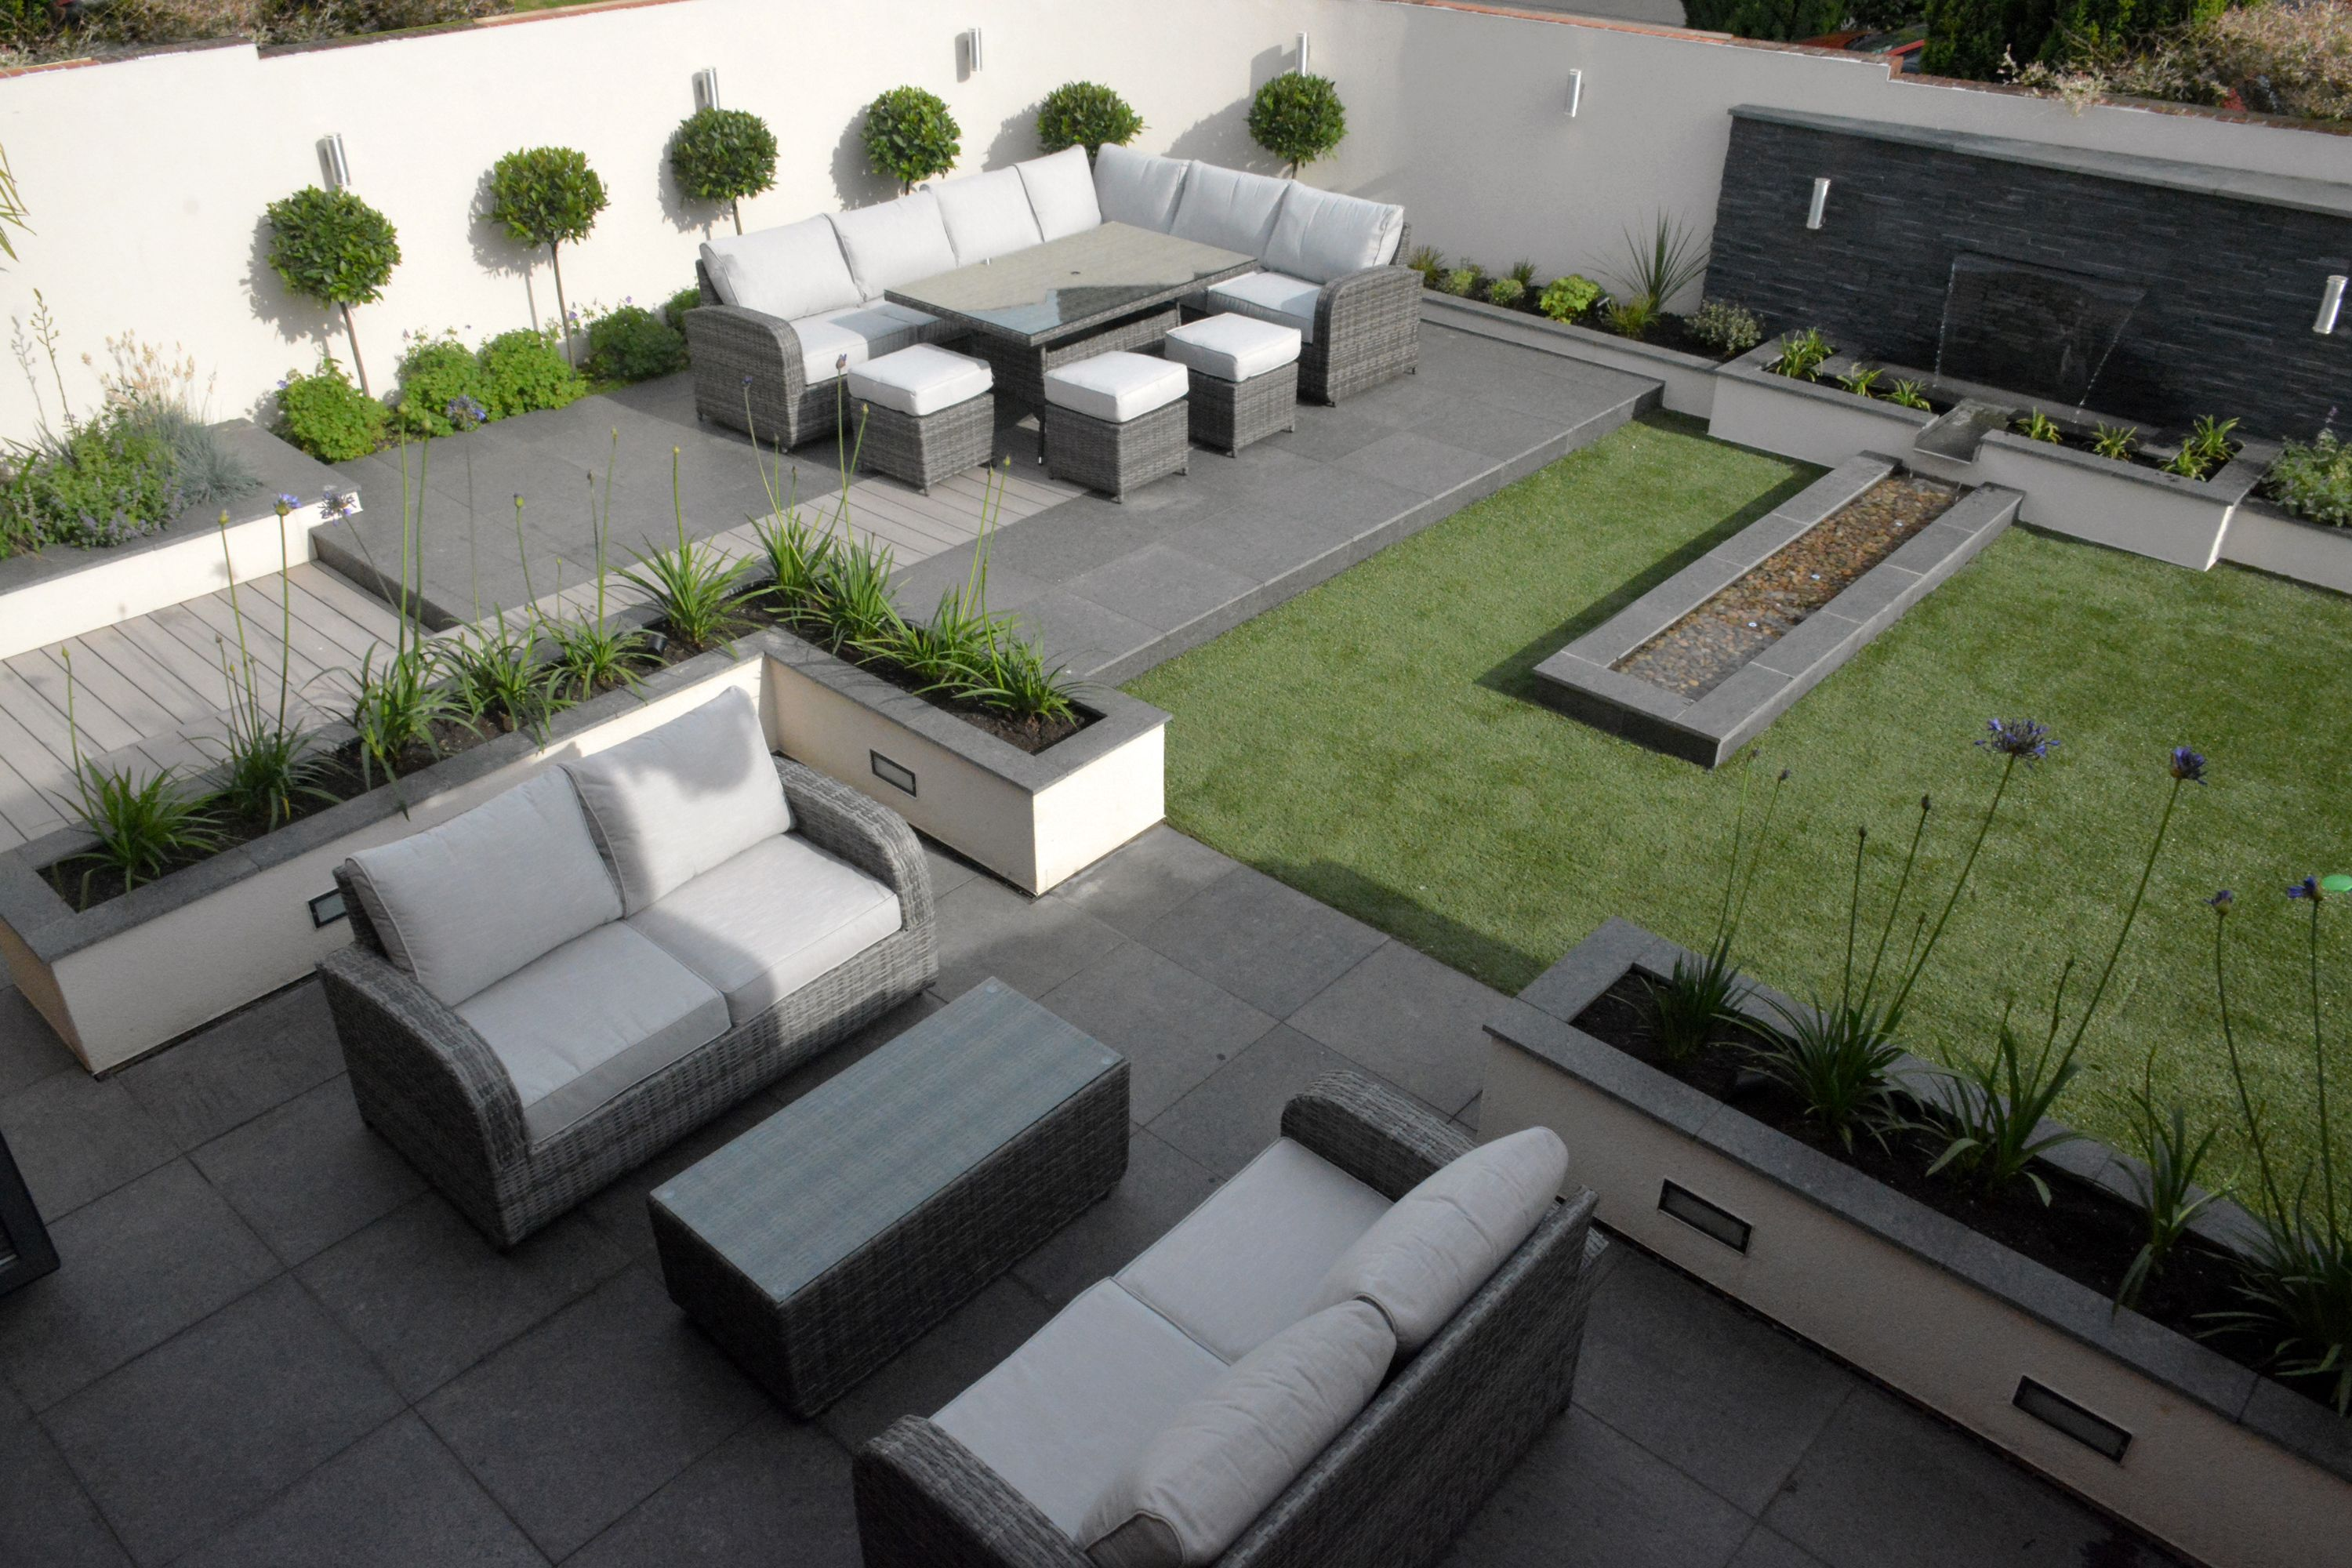 Porcelain paving and posite decking minimalist style garden